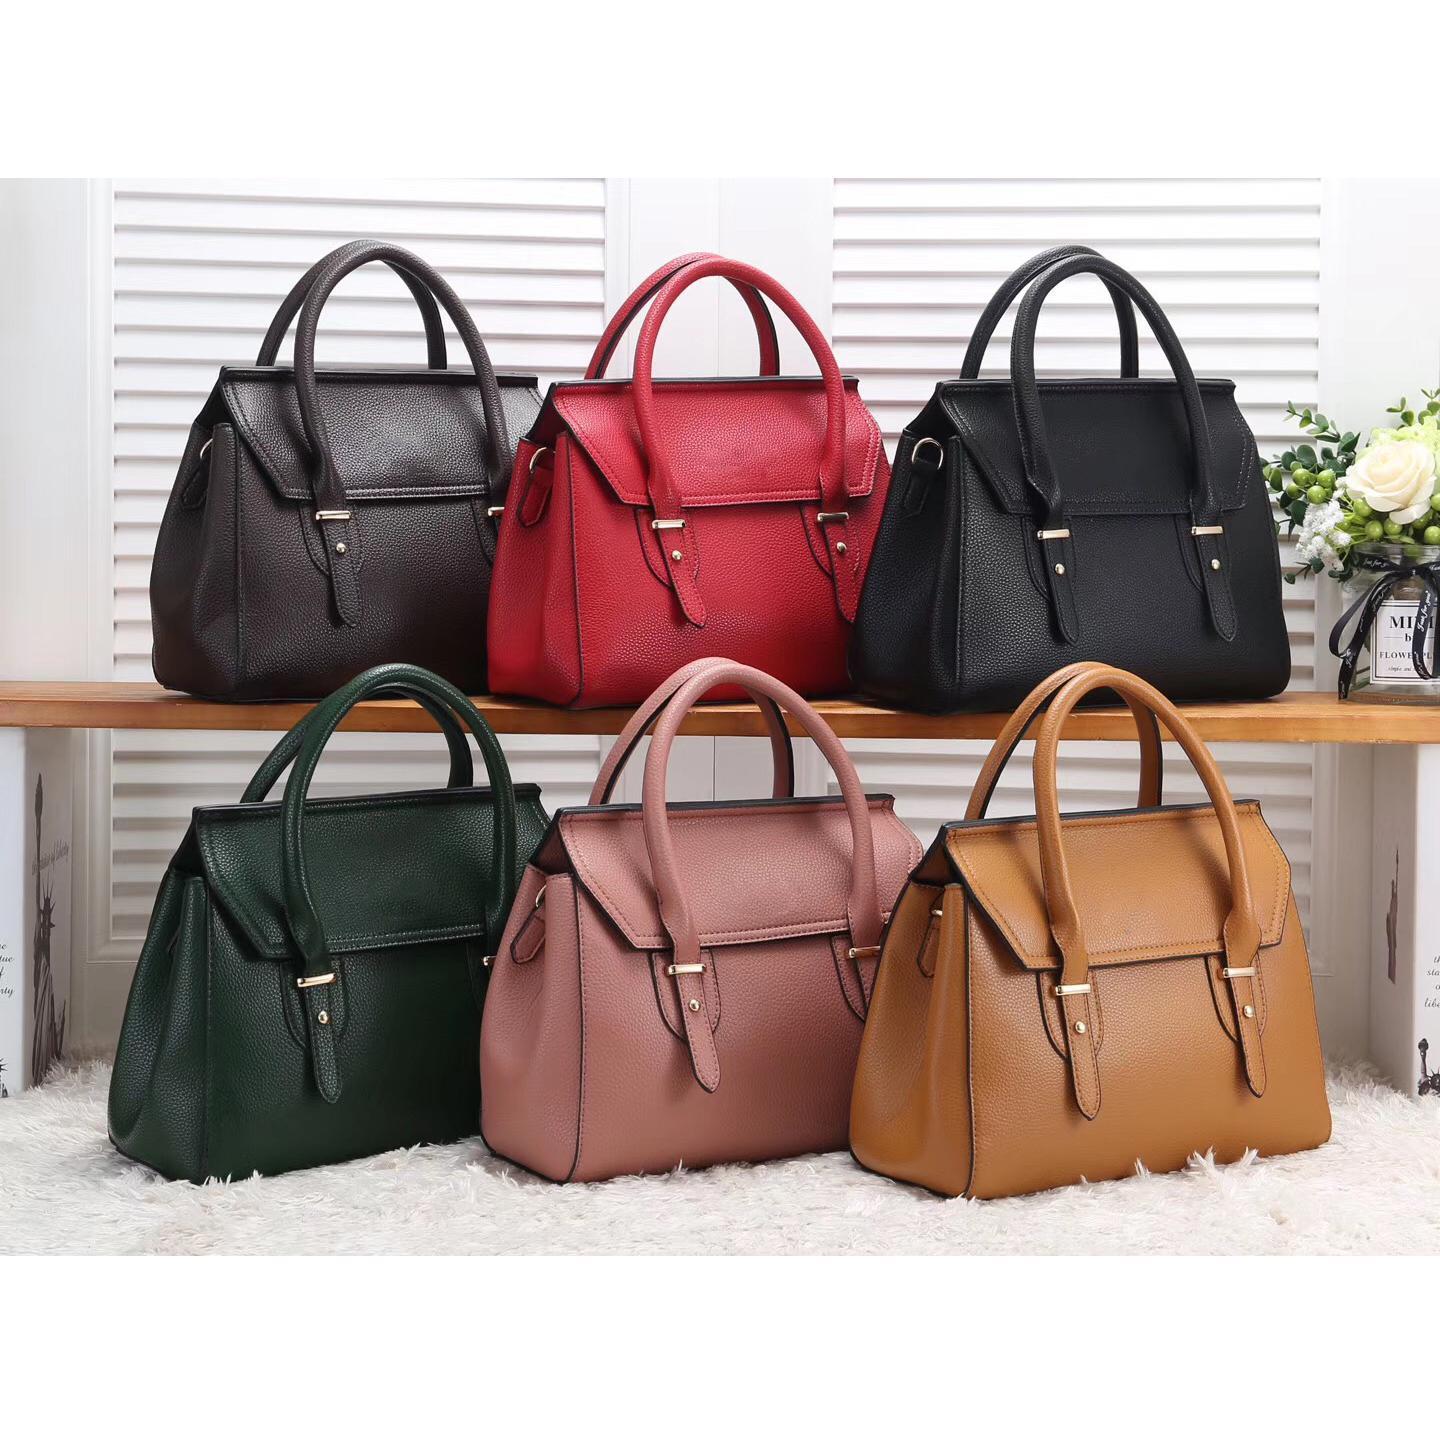 f17a4f36f9e New Fashion Handbags Women Bags Ladies Shoulder Bags Leather Purses Famous  Brand Large Designer Crossbody Tote bag